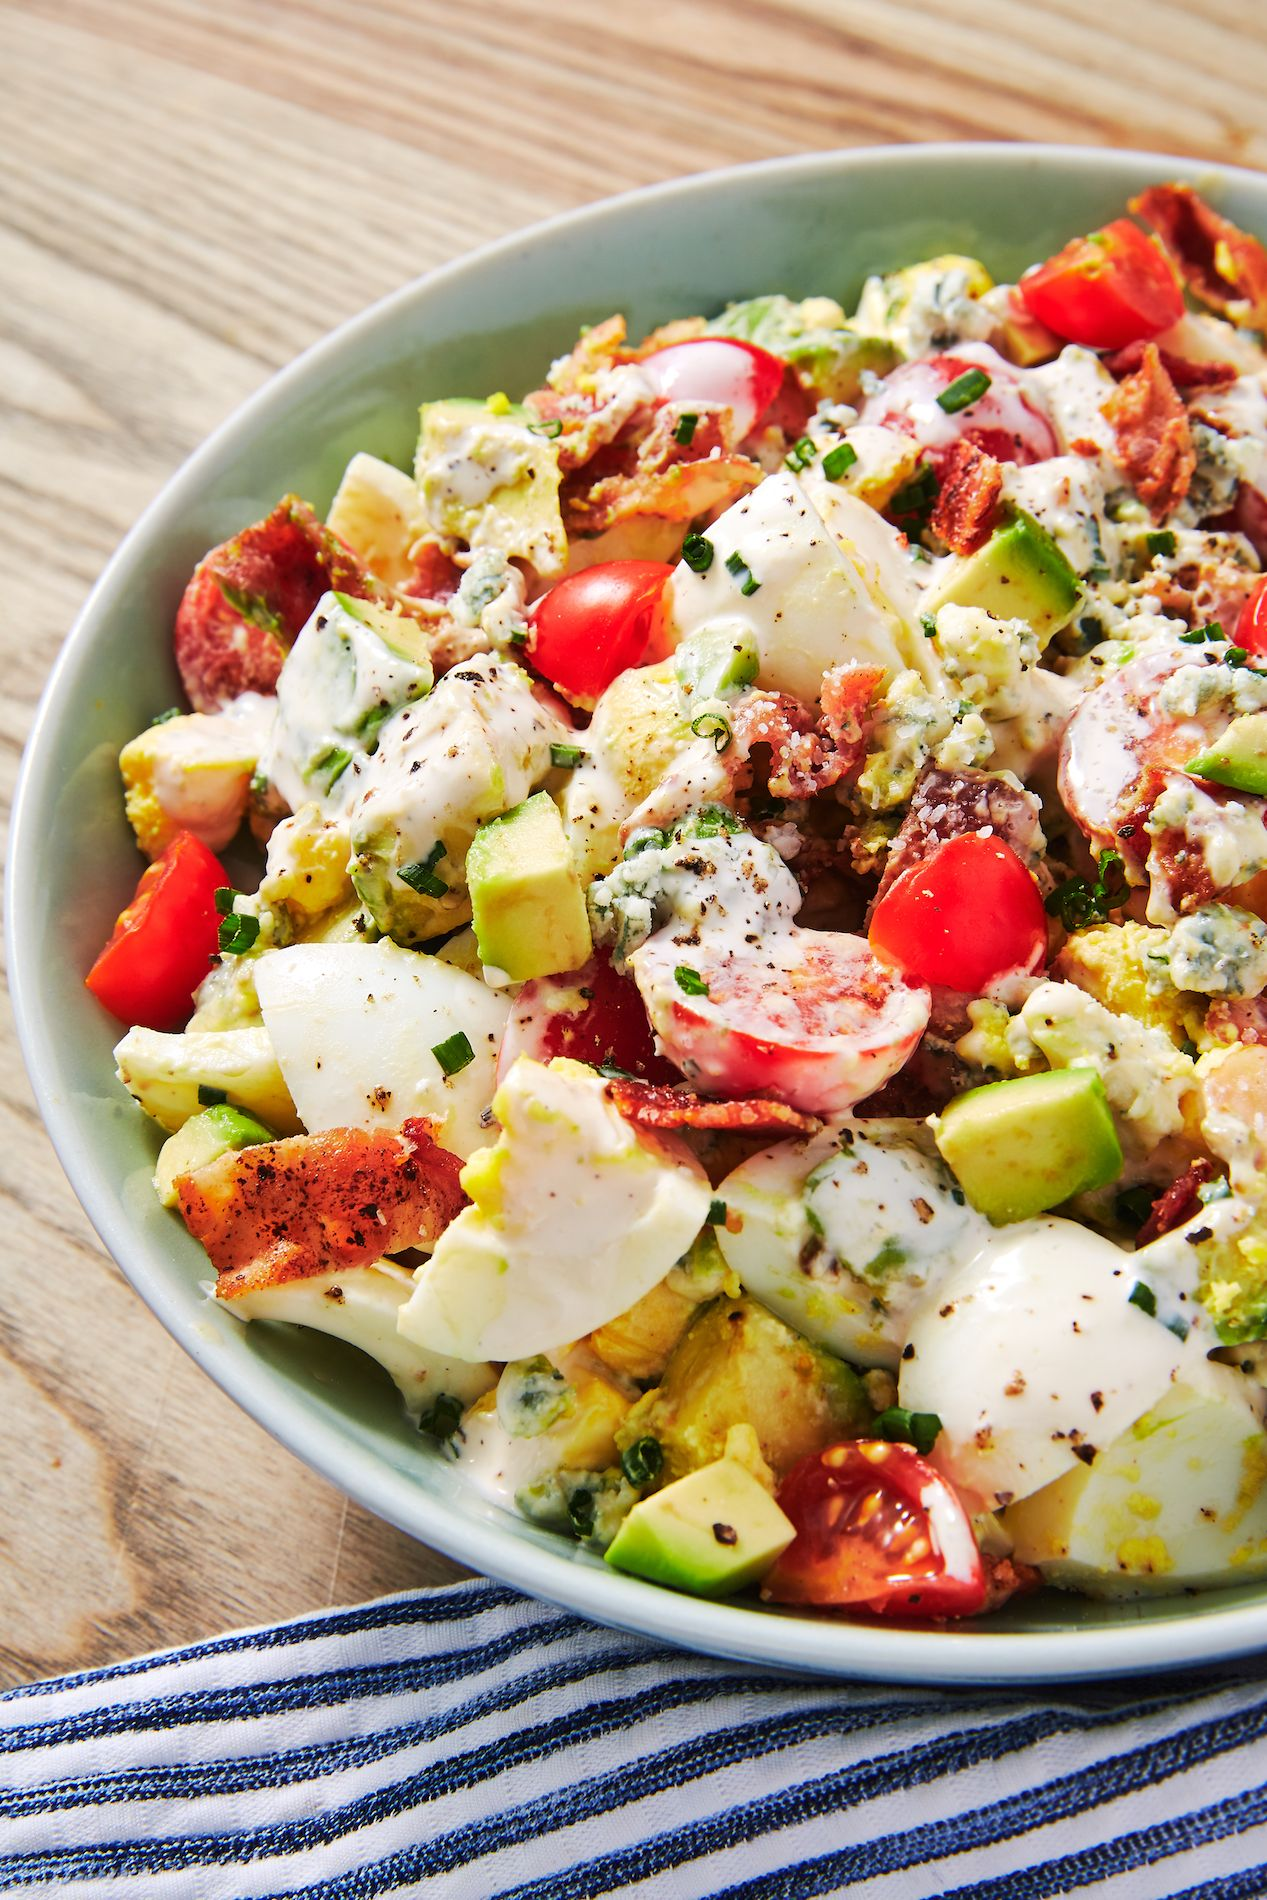 15 Best Keto Friendly Salads To Make Easy Low Carb Keto